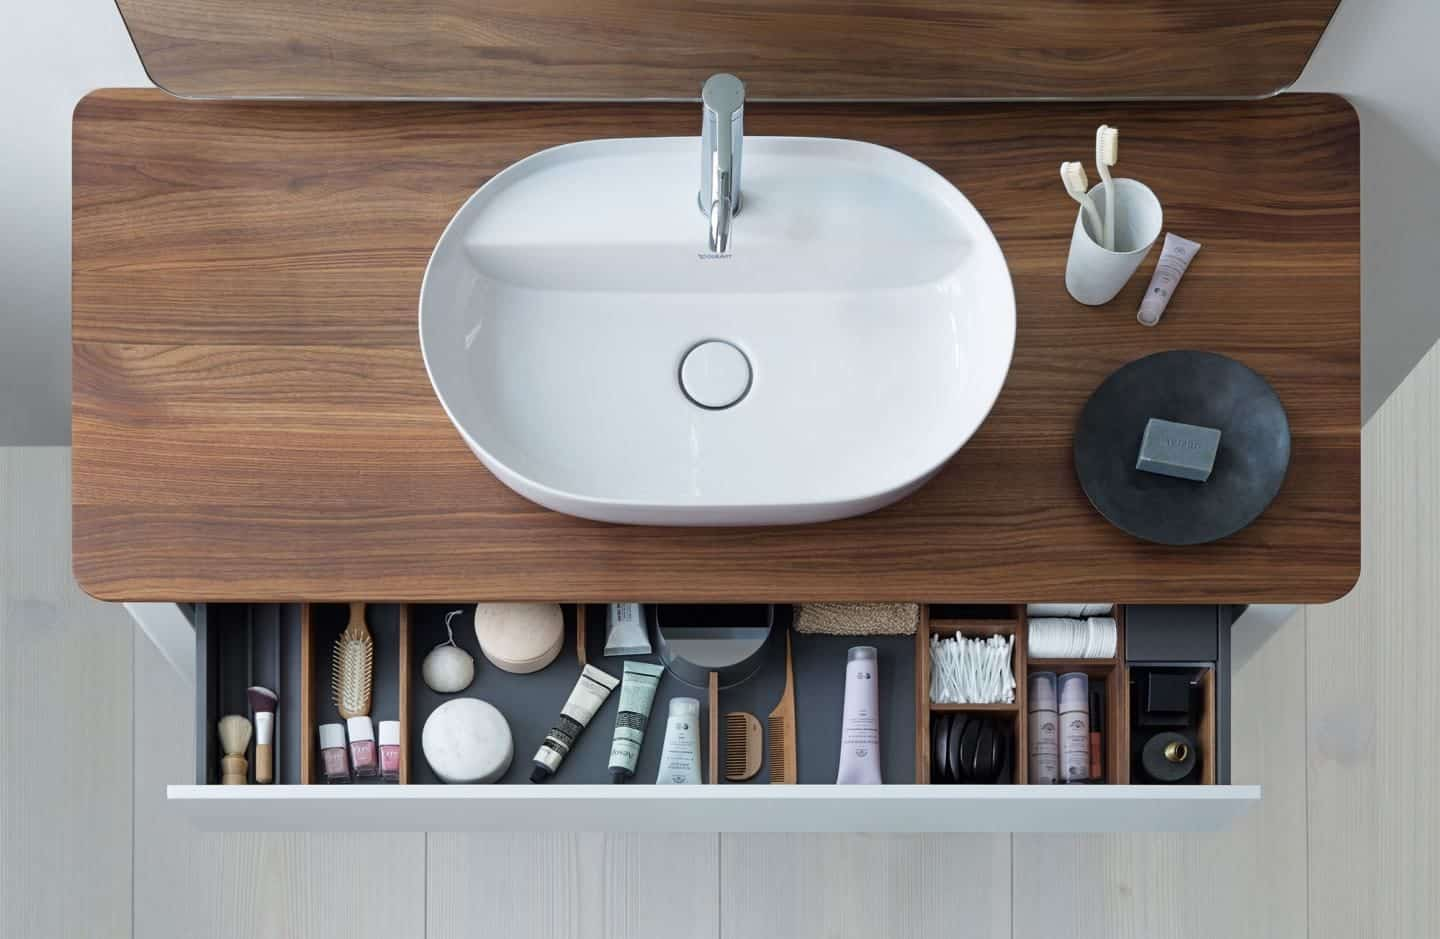 Ariel image of the bathroom basin from the Luv collection by luxury bathroom brand Duravit.